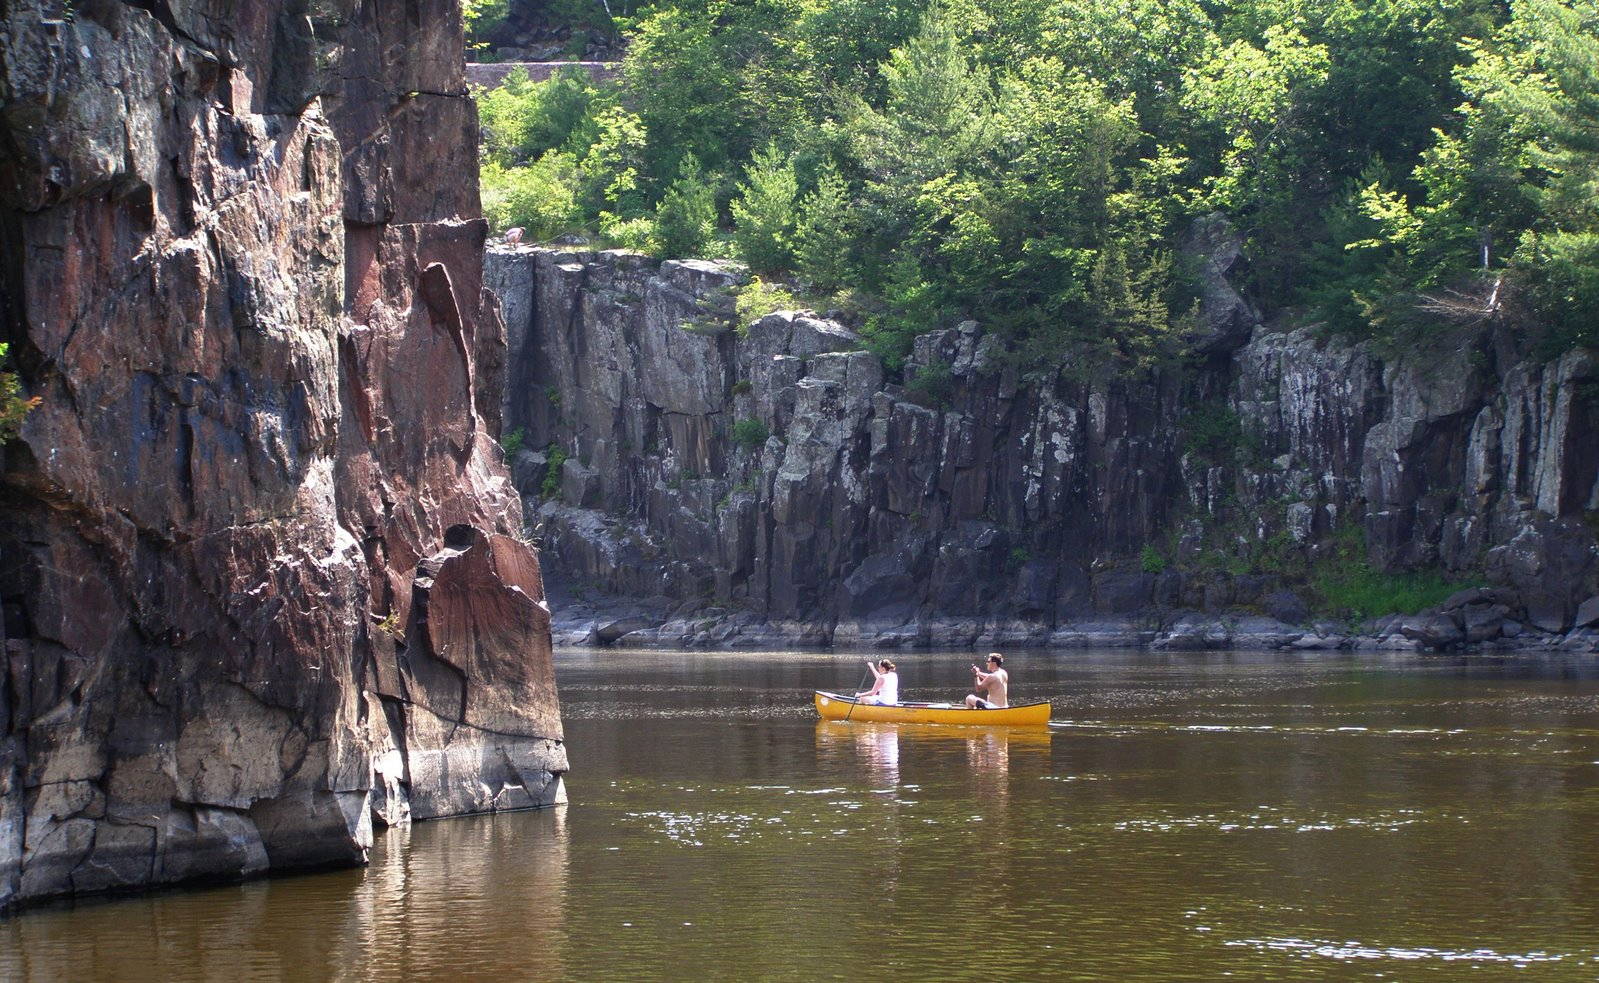 canoeing the st croix river, minnesota and wisconsin